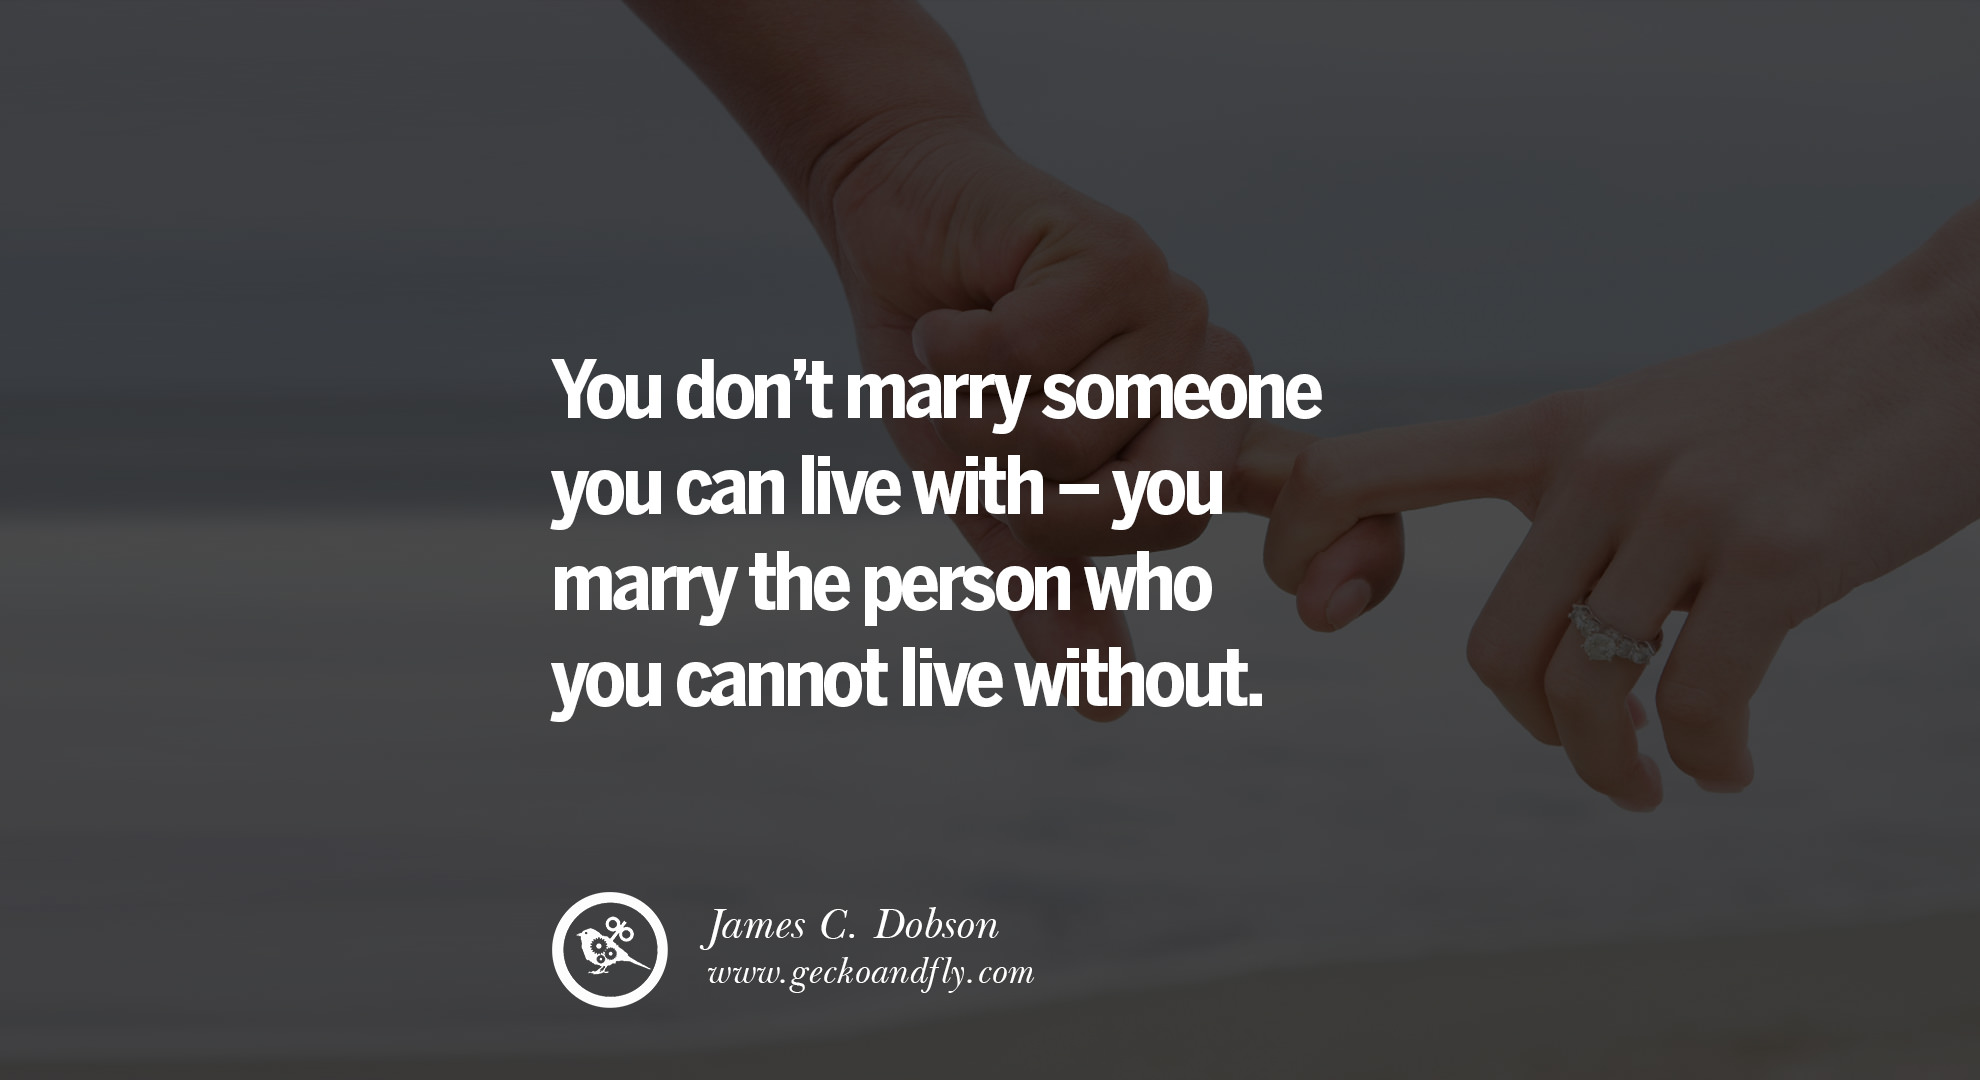 quotes about love You dont marry someone you can live with you ...